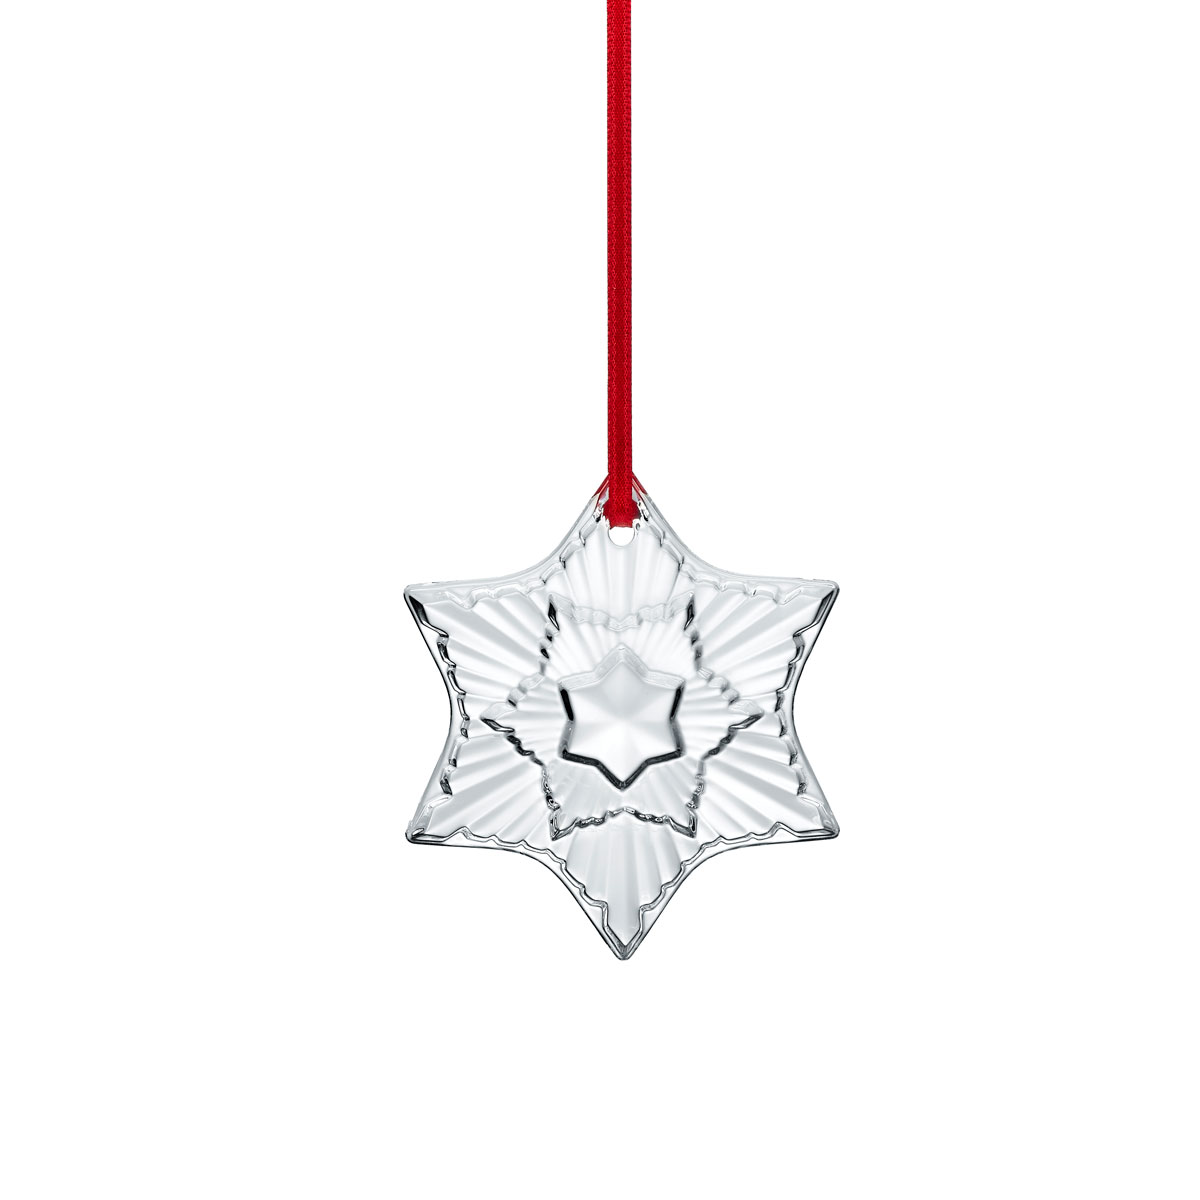 Baccarat 2020 Annual Christmas Ornament, Clear